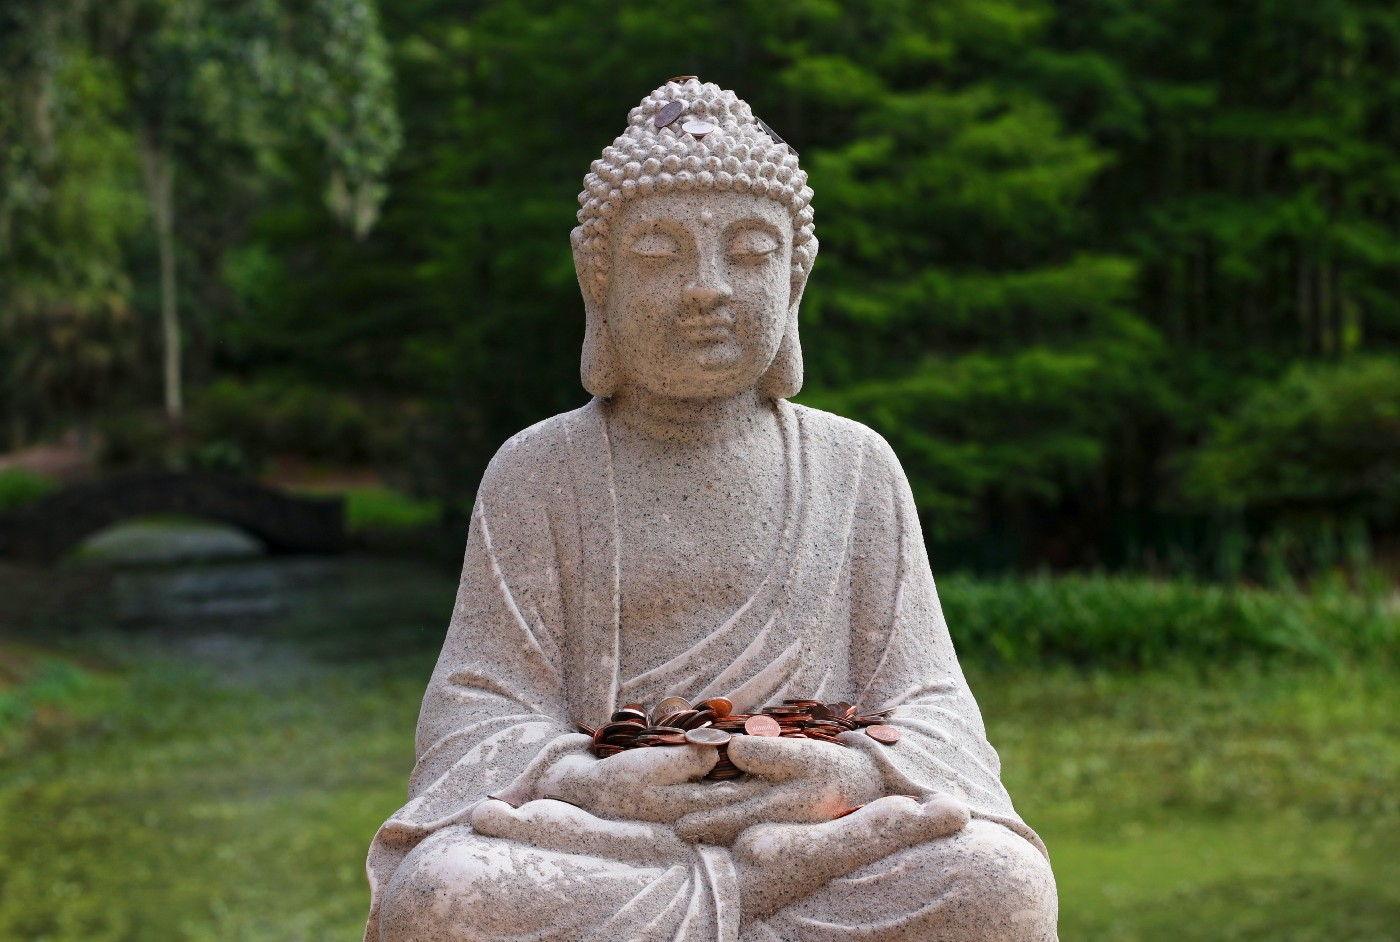 A statue of the Buddha holding coins, legs crossed.